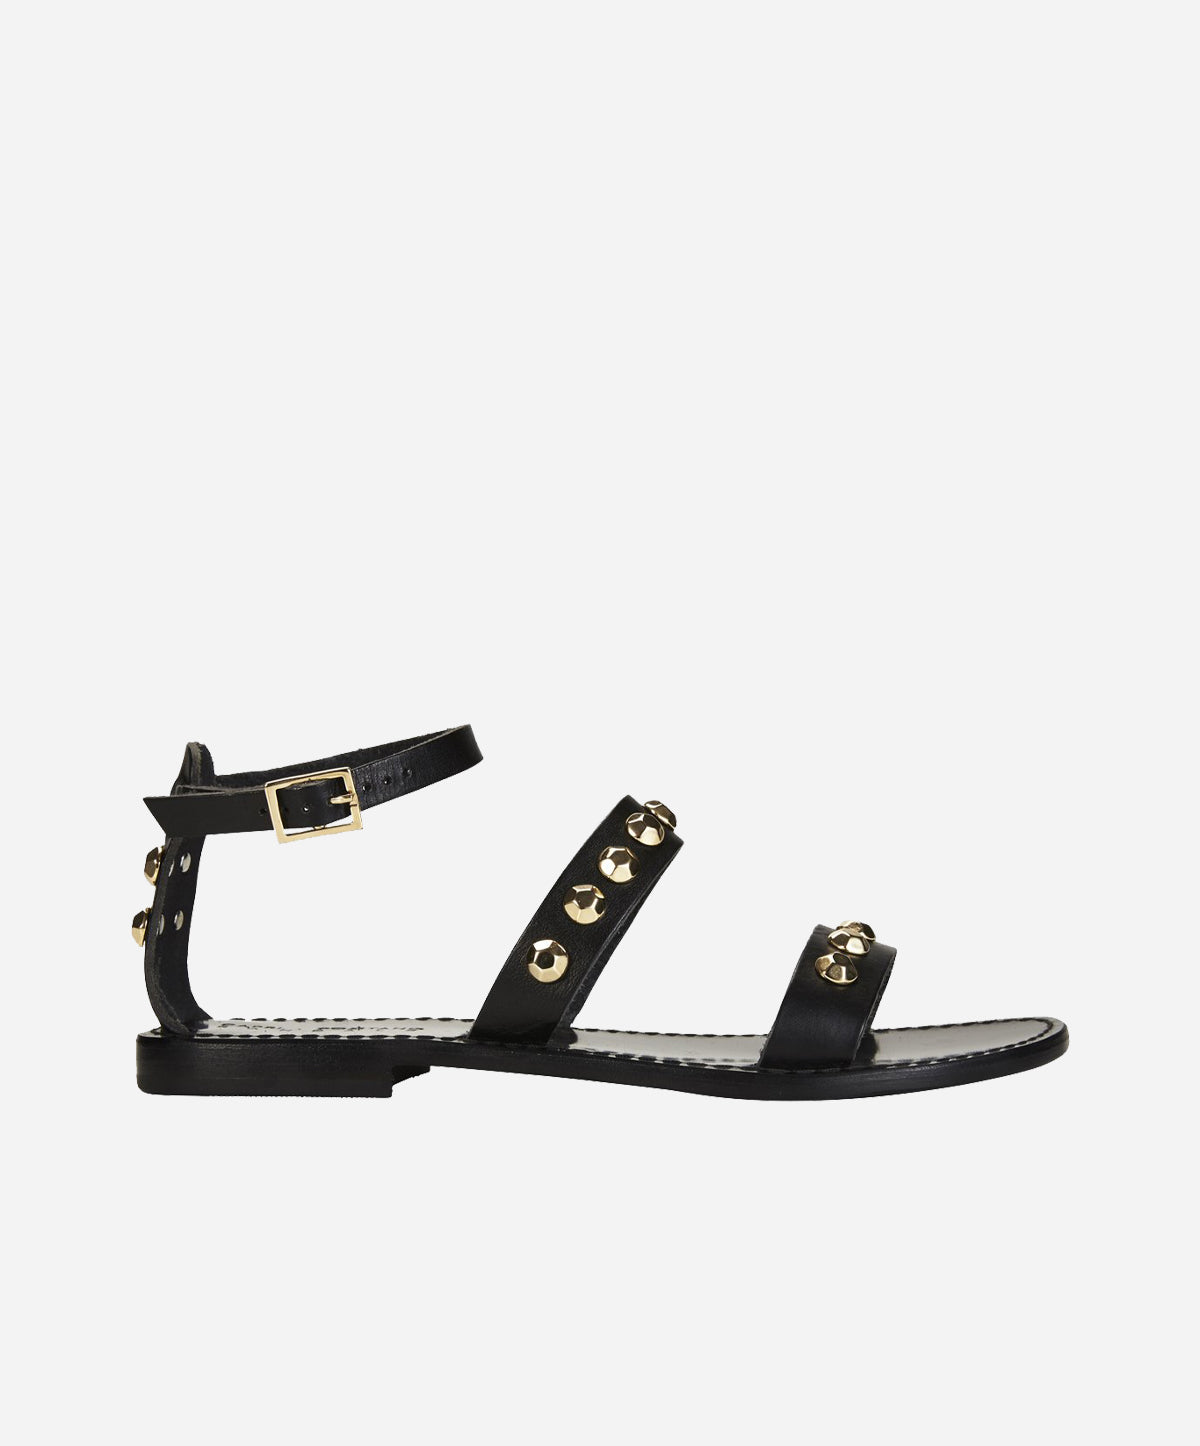 Furore Studded Slide